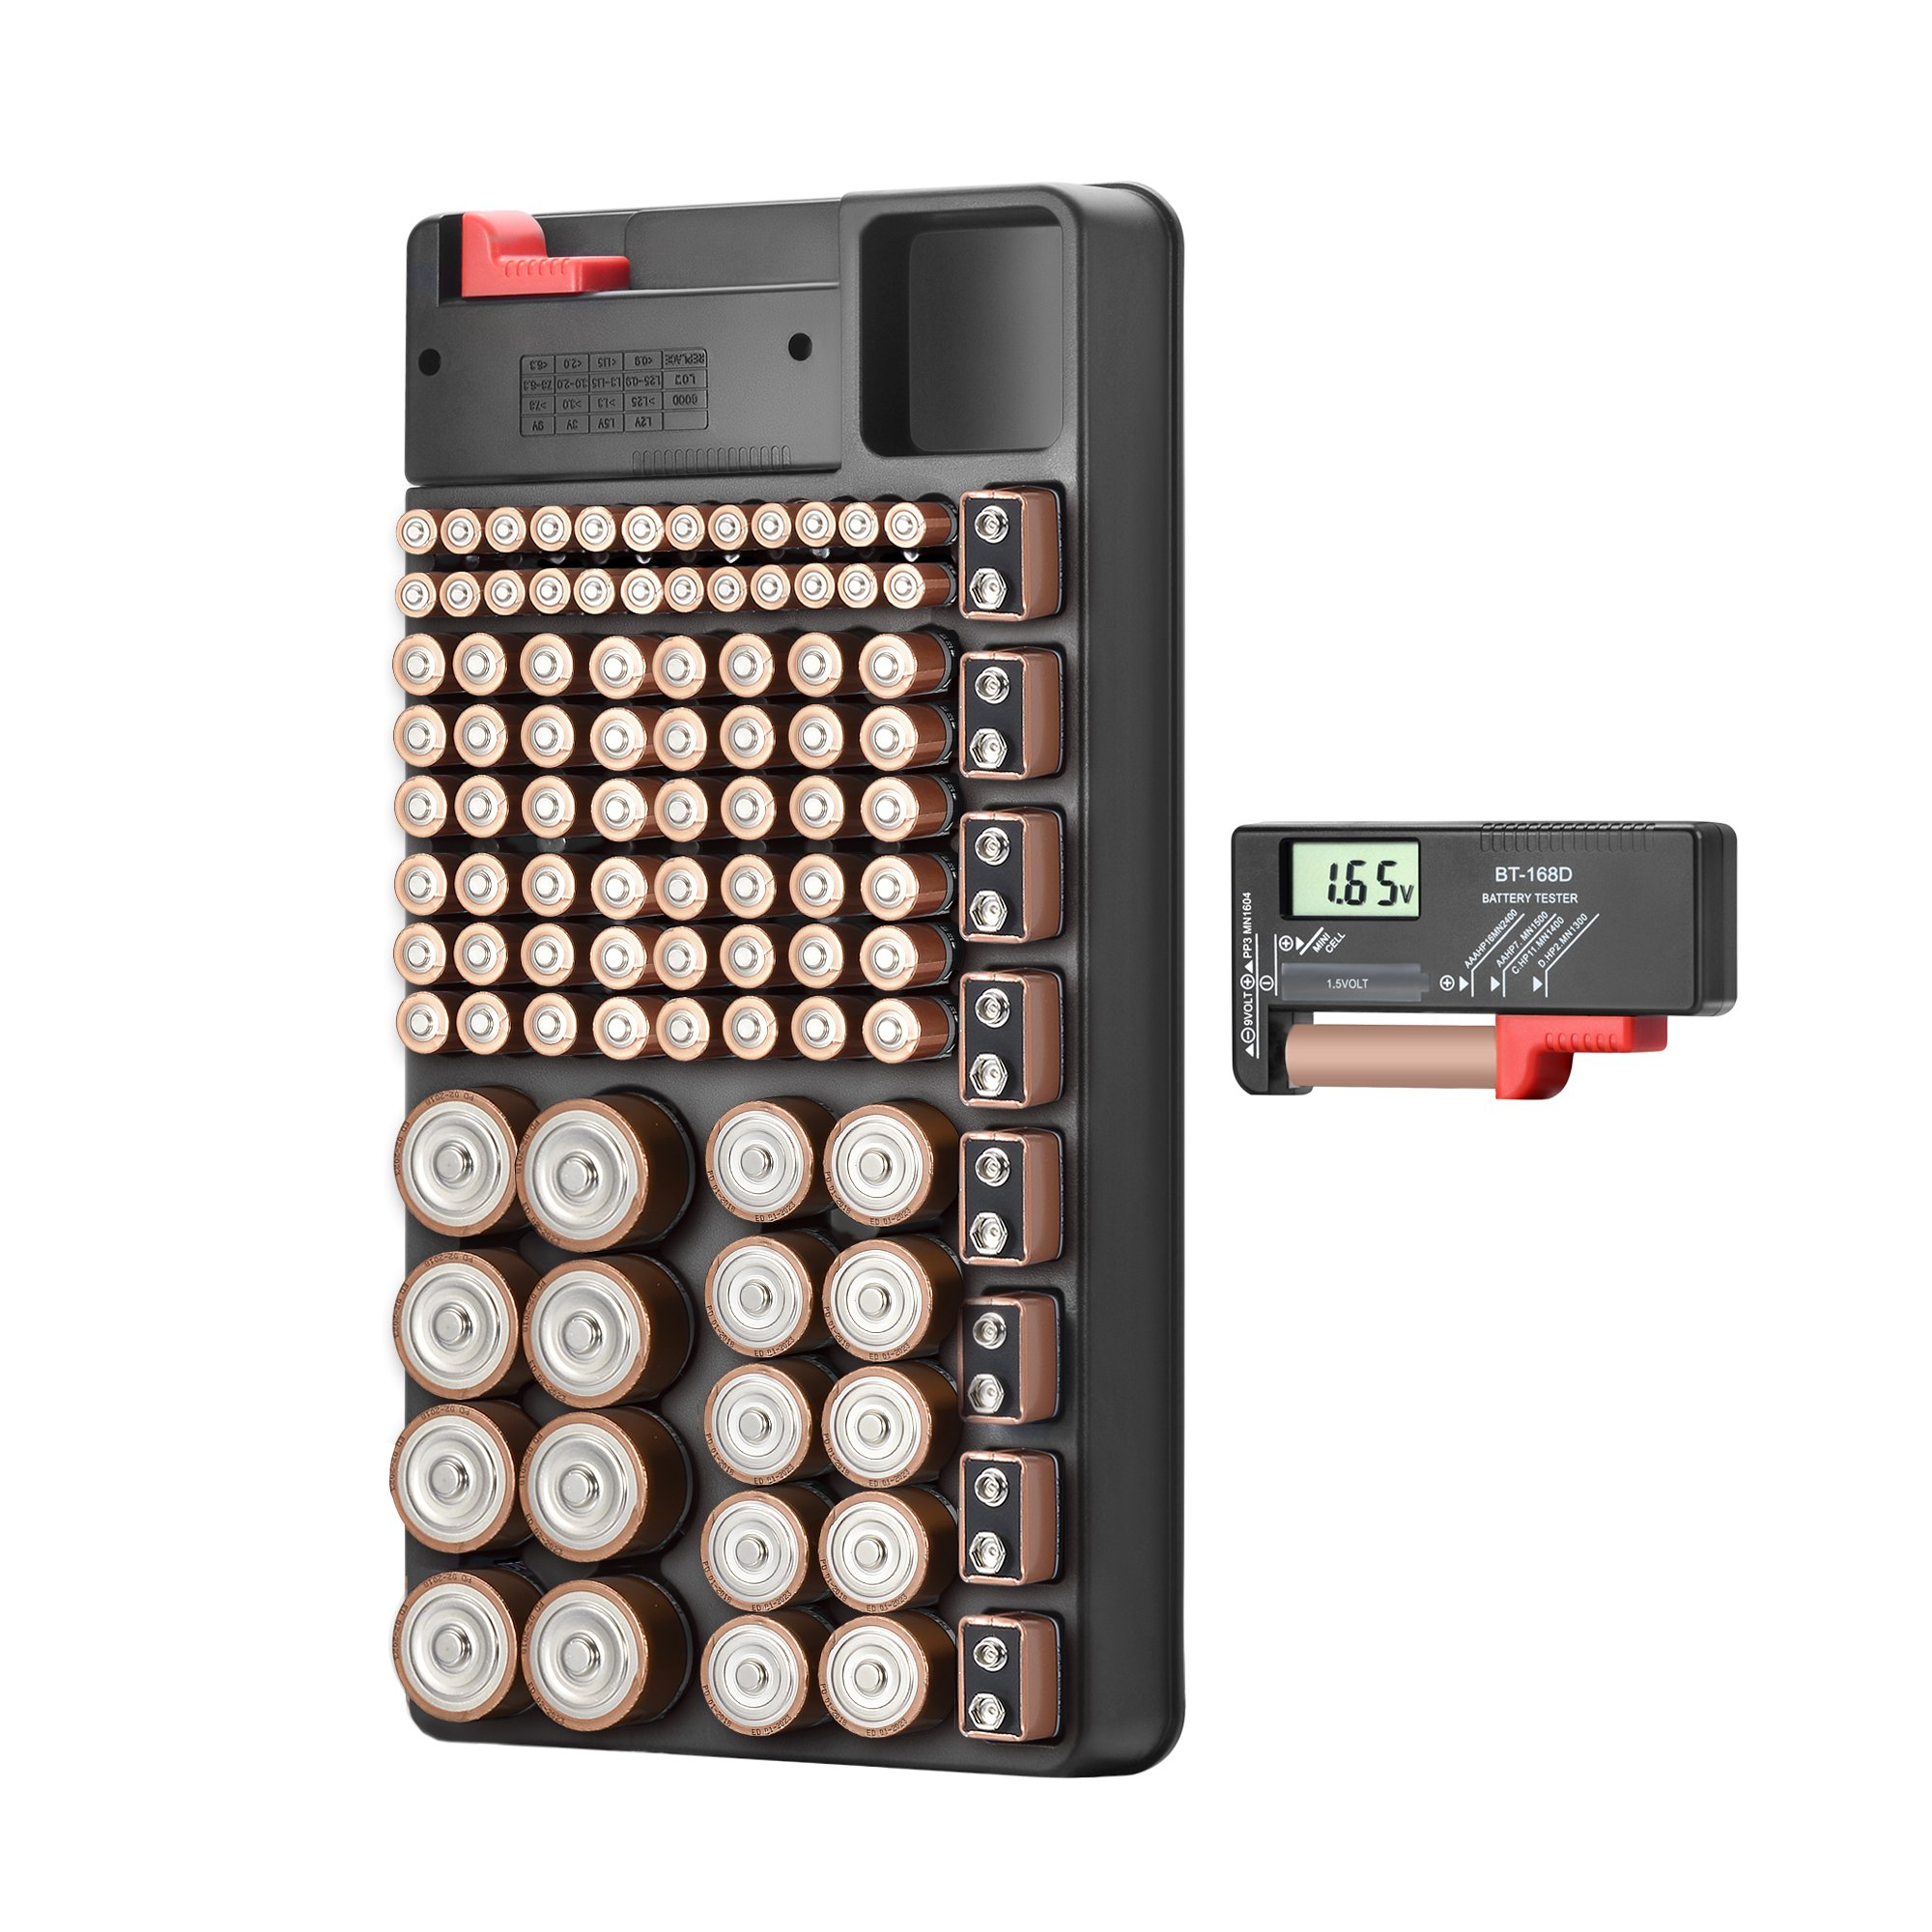 Grectek The Battery Organizer Storage Case with Removable Battery Tester, Holds 6 Various Sizes 100+ Batteries